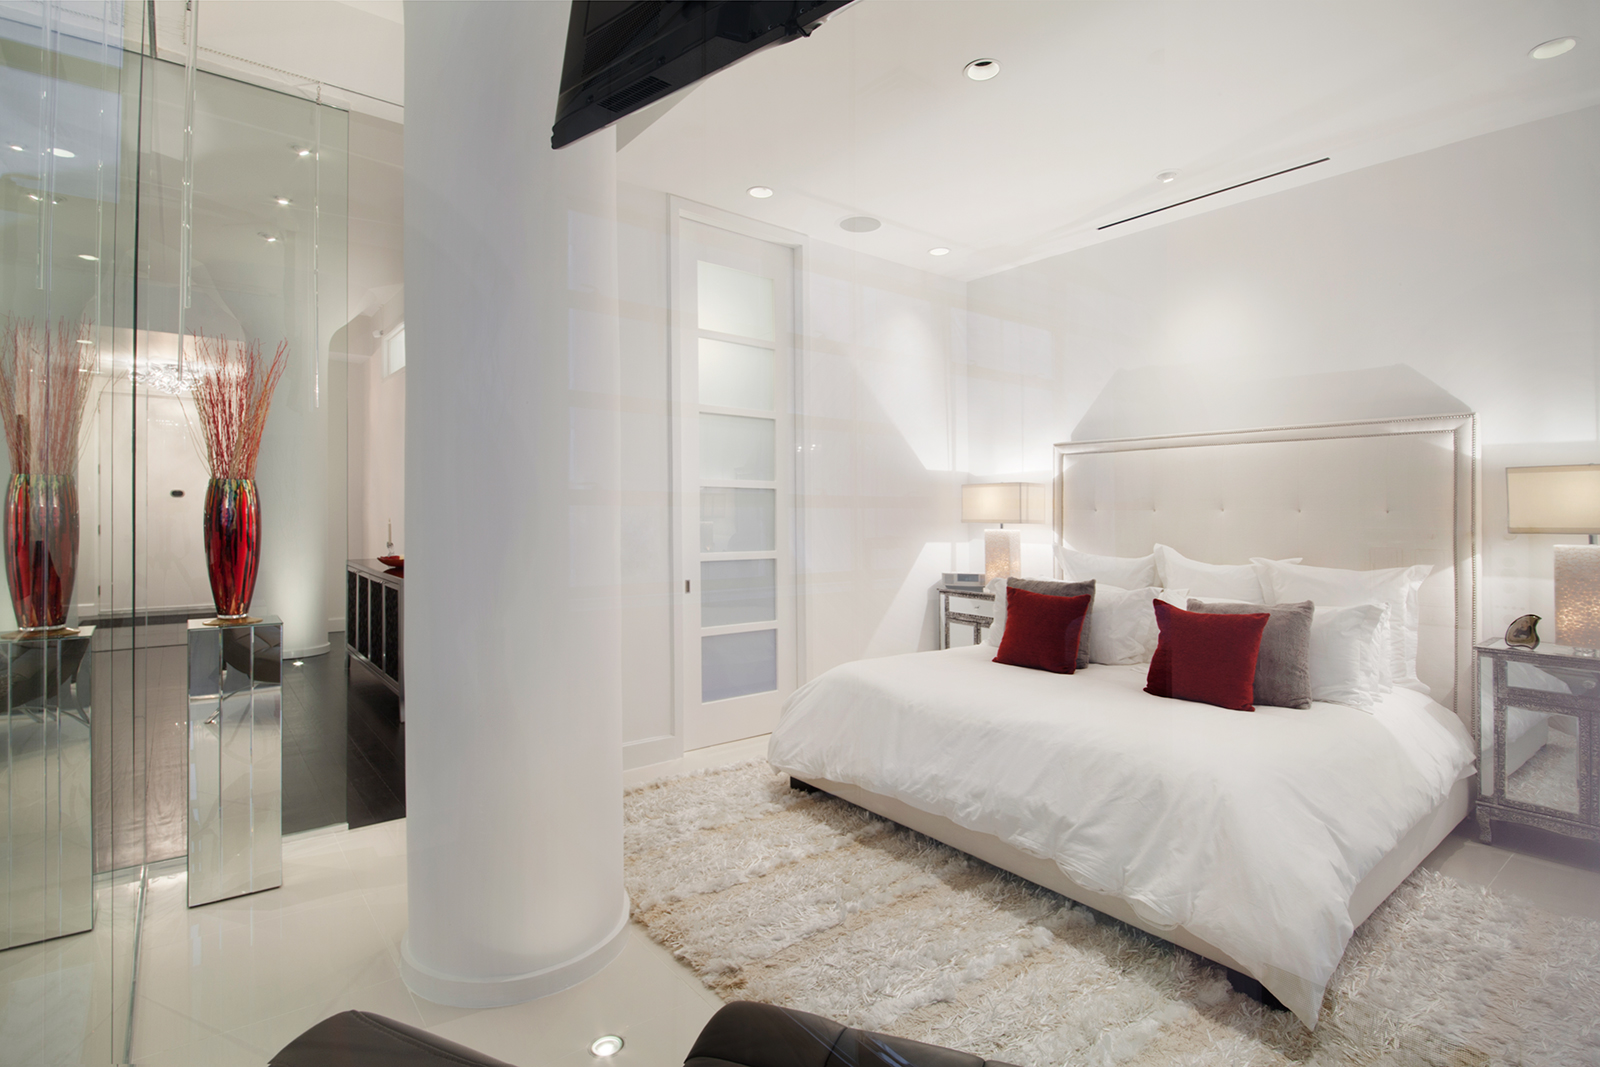 Tribeca Condo With Two Voyeuristic Glass-Enclosed Bedrooms Asks ...